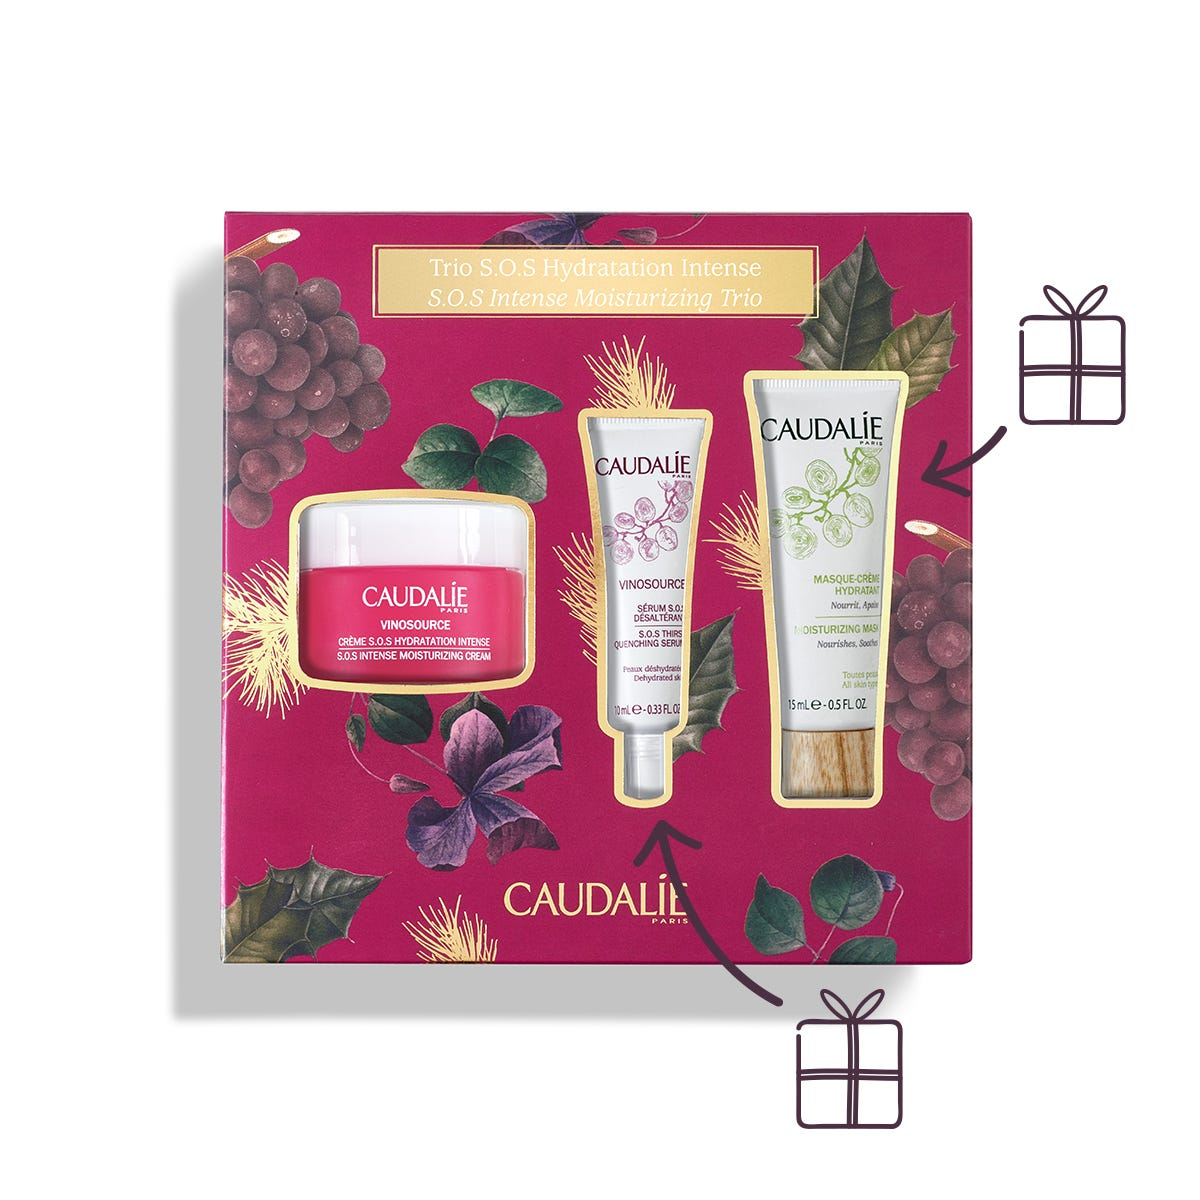 CAUDALIE COFFRET 2019 VINOSOURCE CREME